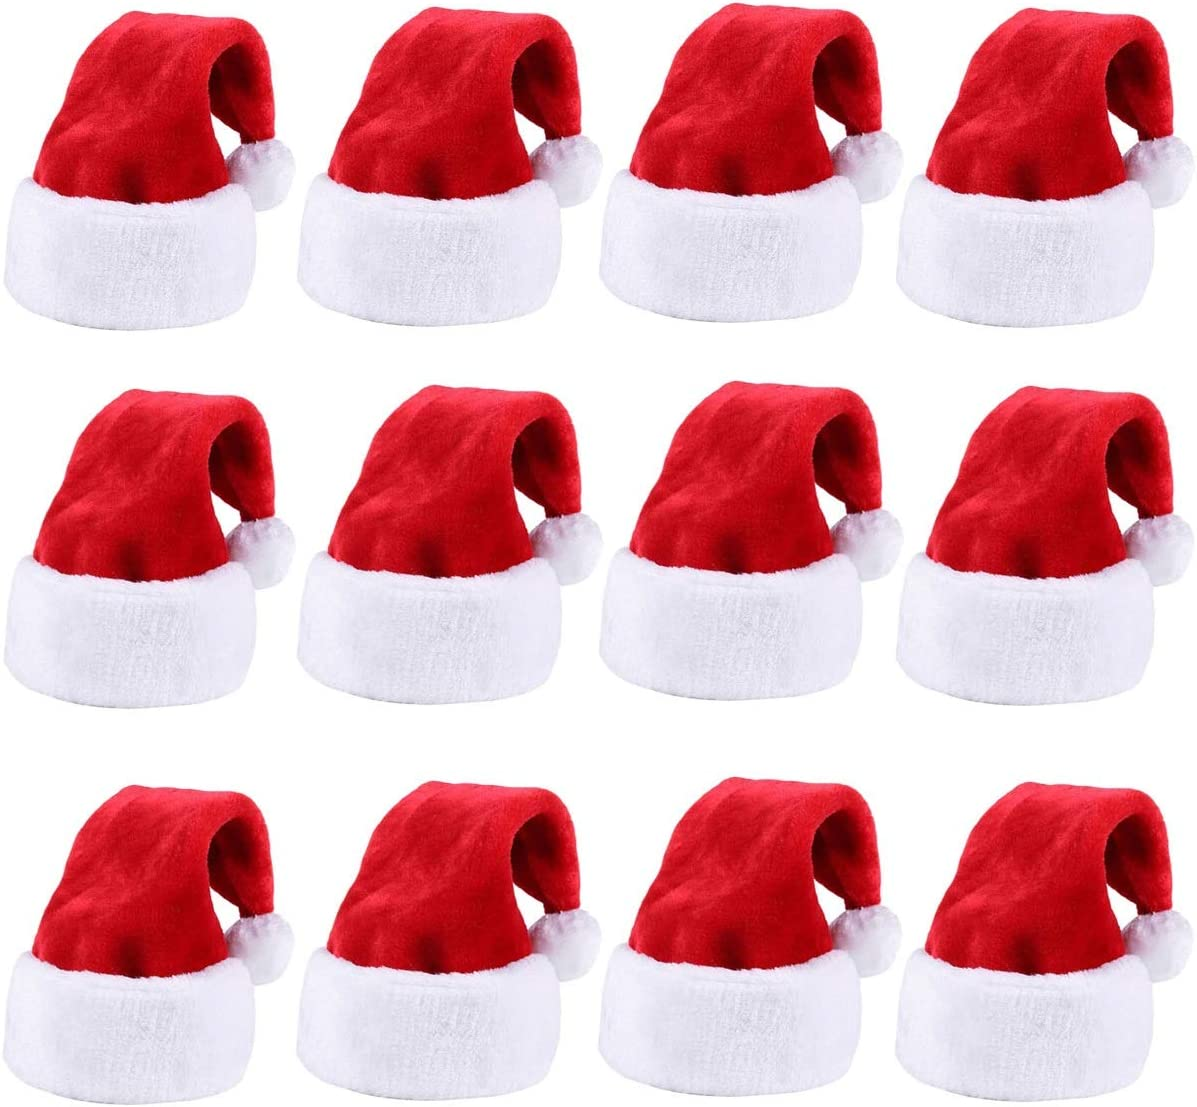 Amazon Com Christmas Santa Hat Thickened Luxury Short Plush Christmas Hat Thickened Lengthened Santa Claus Cap Xmas Hat For Adults Red 12pcs Health Personal Care